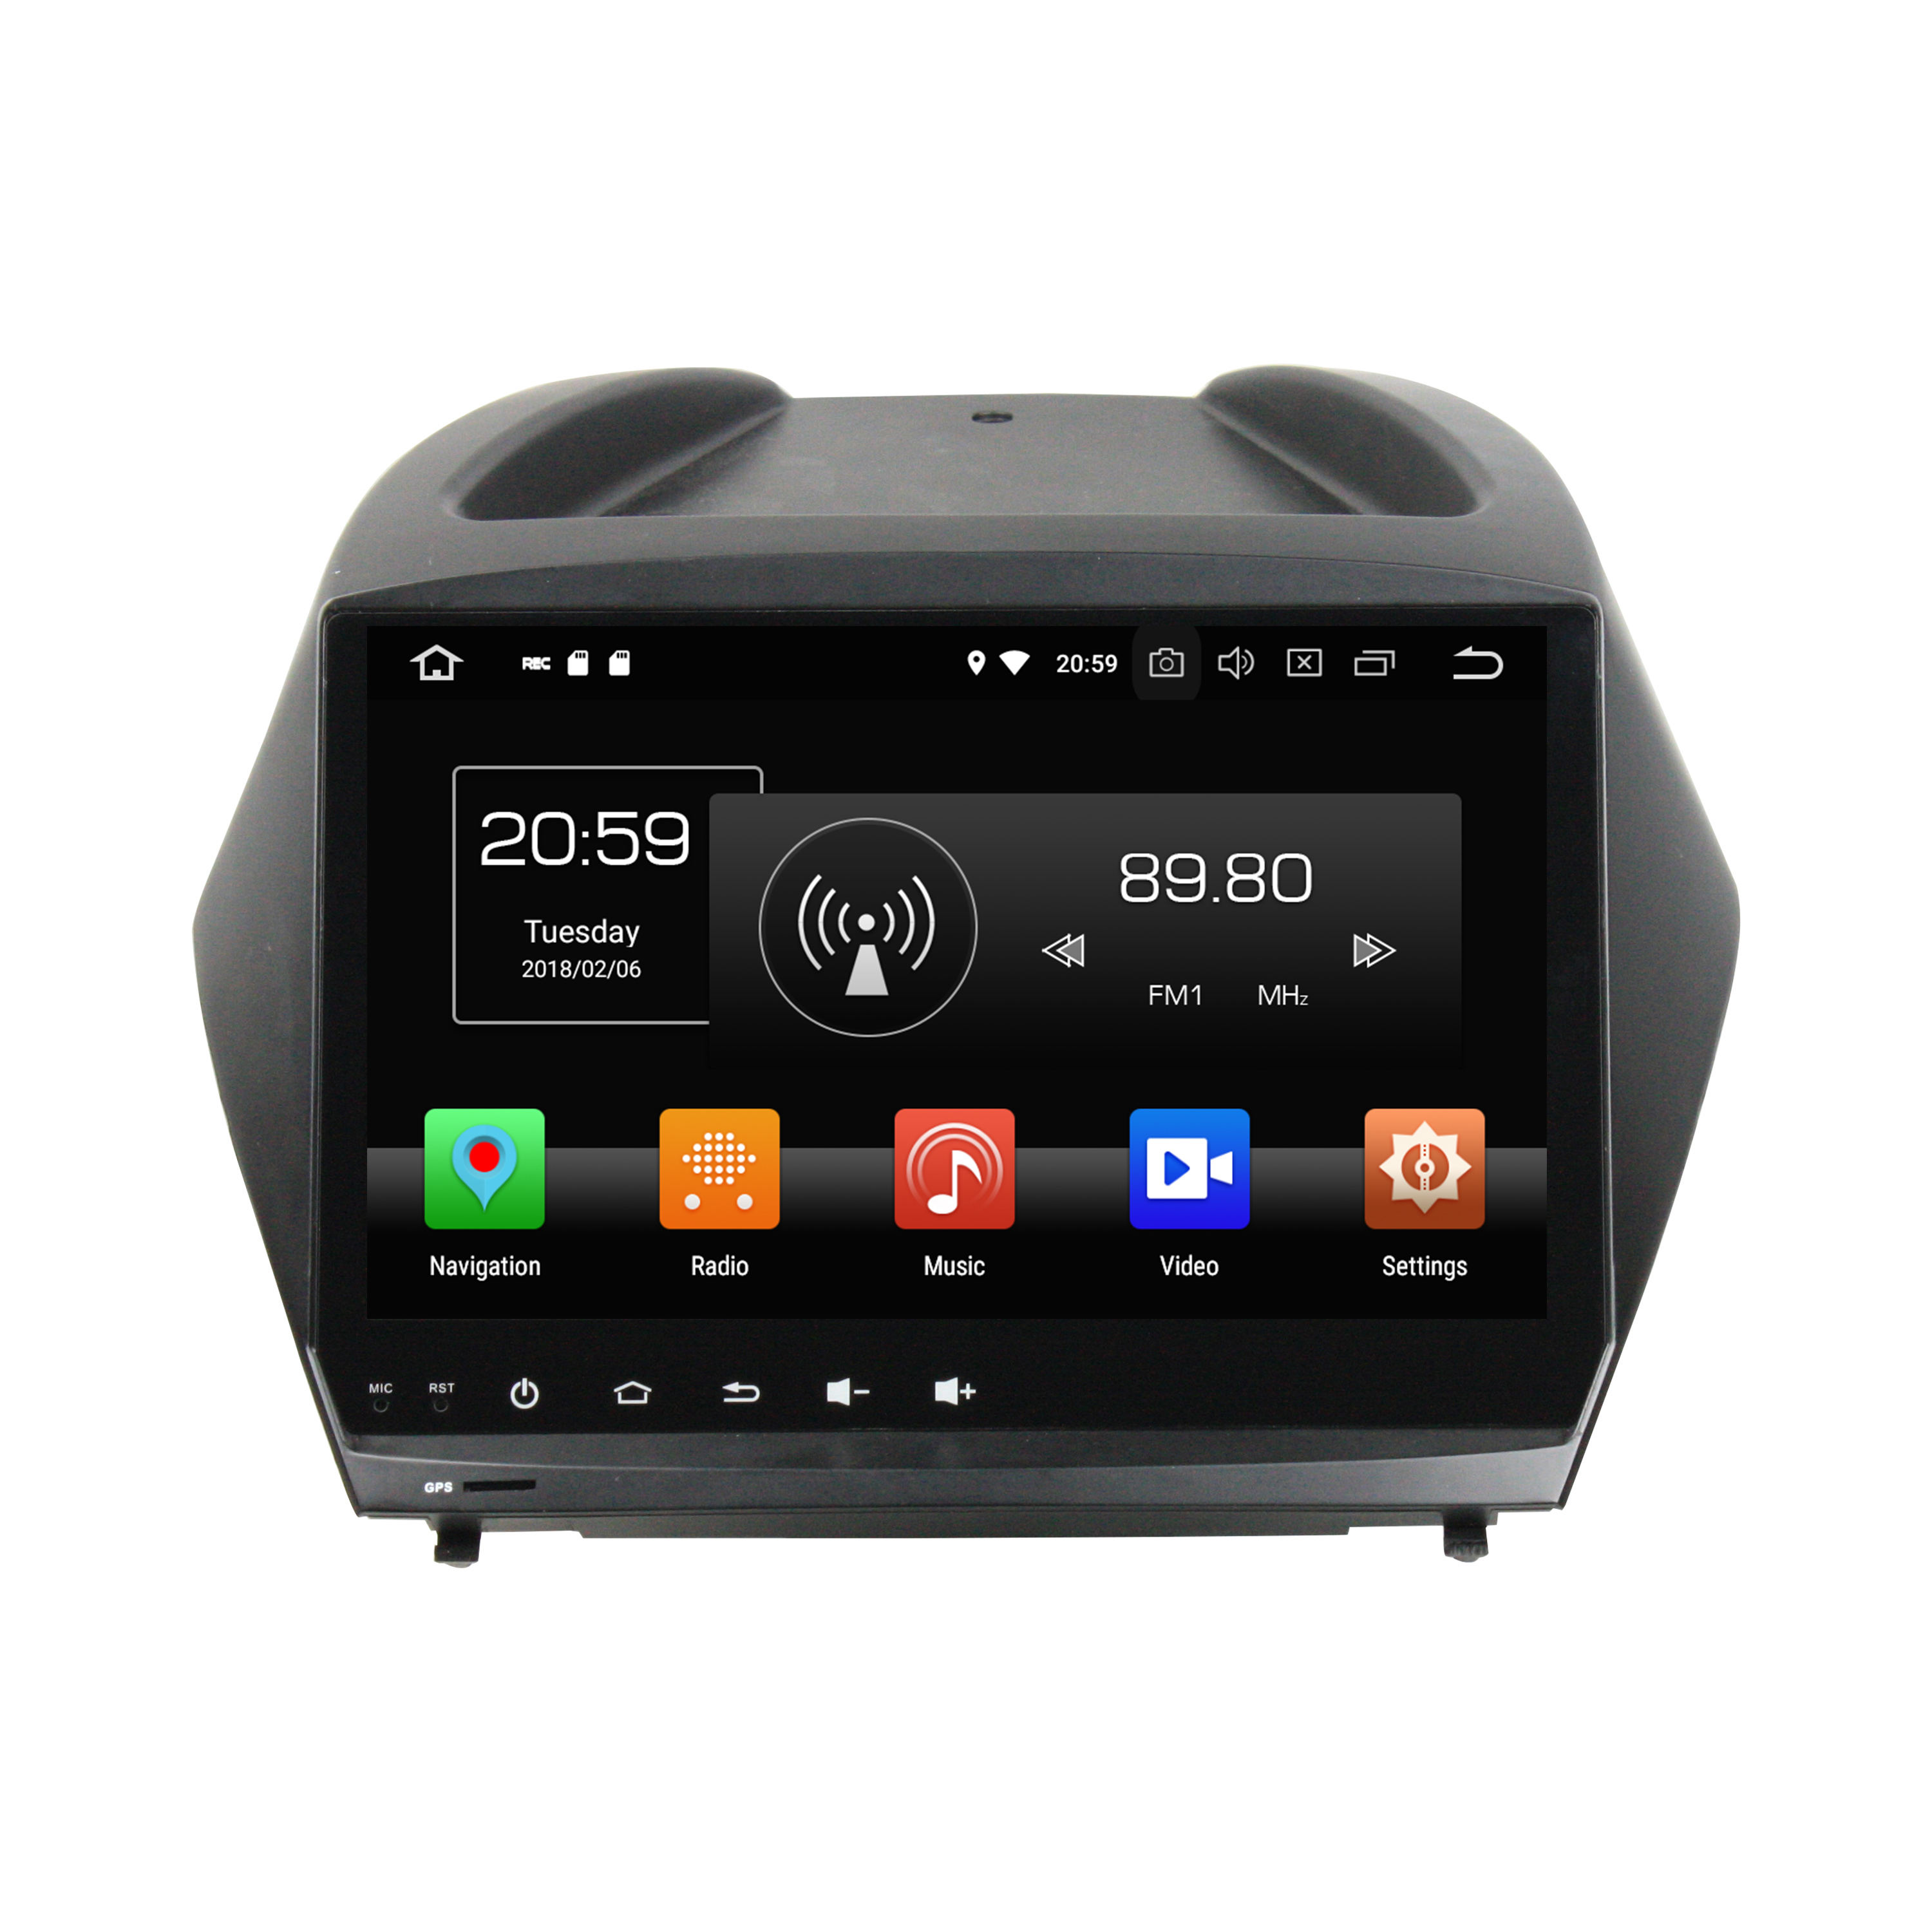 KLYDE Android 8. 0 octa core px5 nxp6686 radio 9 zoll 2 din auto multimedia system für IX35/Tucson 2011-2015